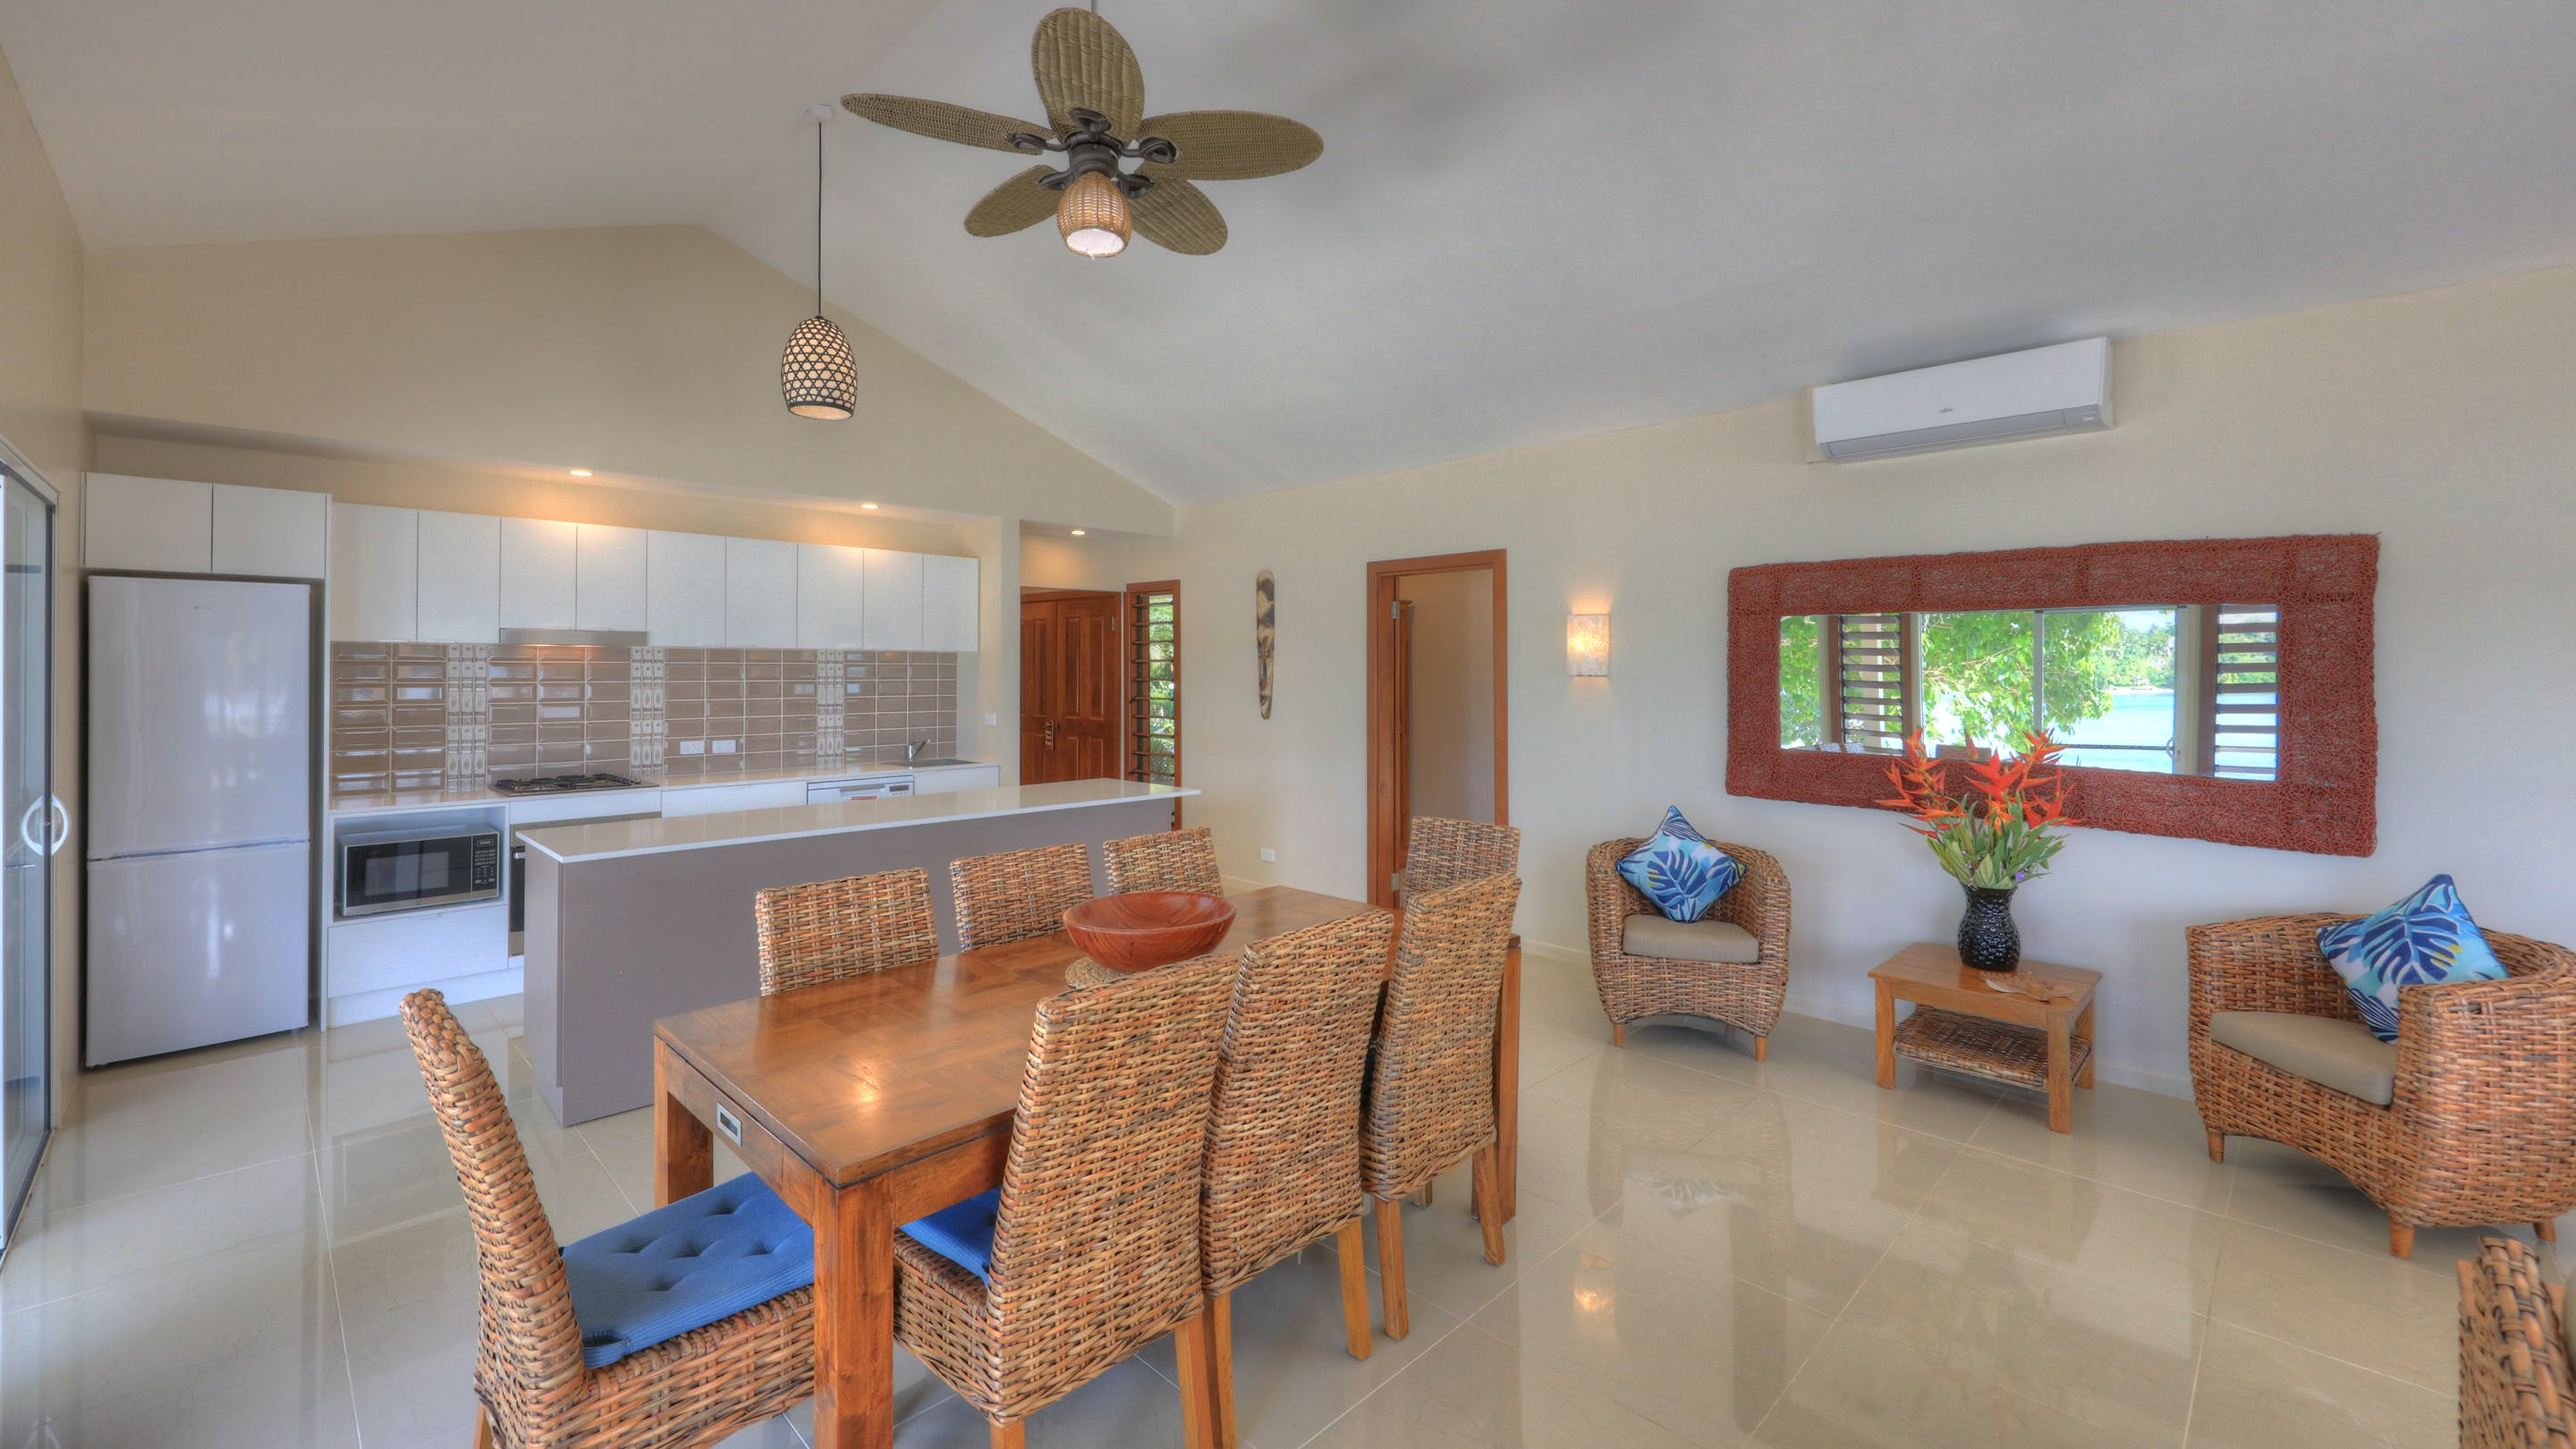 erakor island resort beach cottage dining room #erakorislandresort #tropicalislandholiday erakor island resort beach cottage